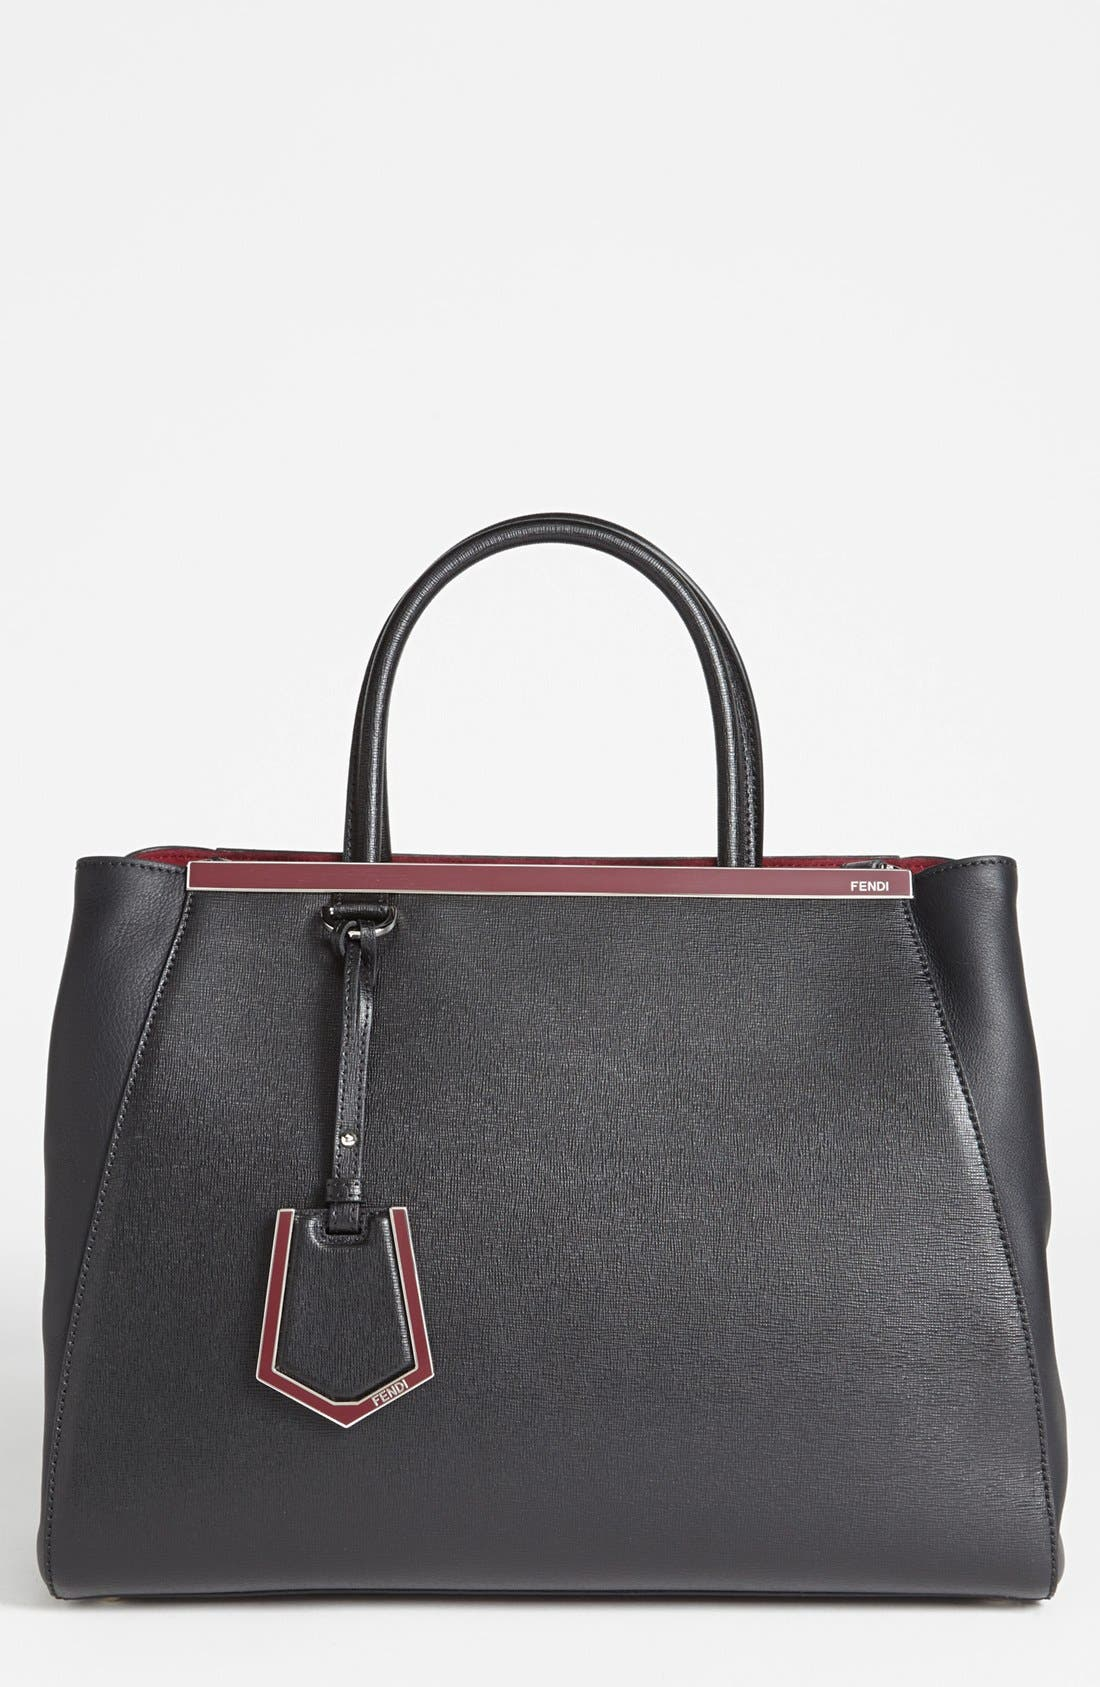 Alternate Image 1 Selected - Fendi '2Jours- Medium' Leather Shopper